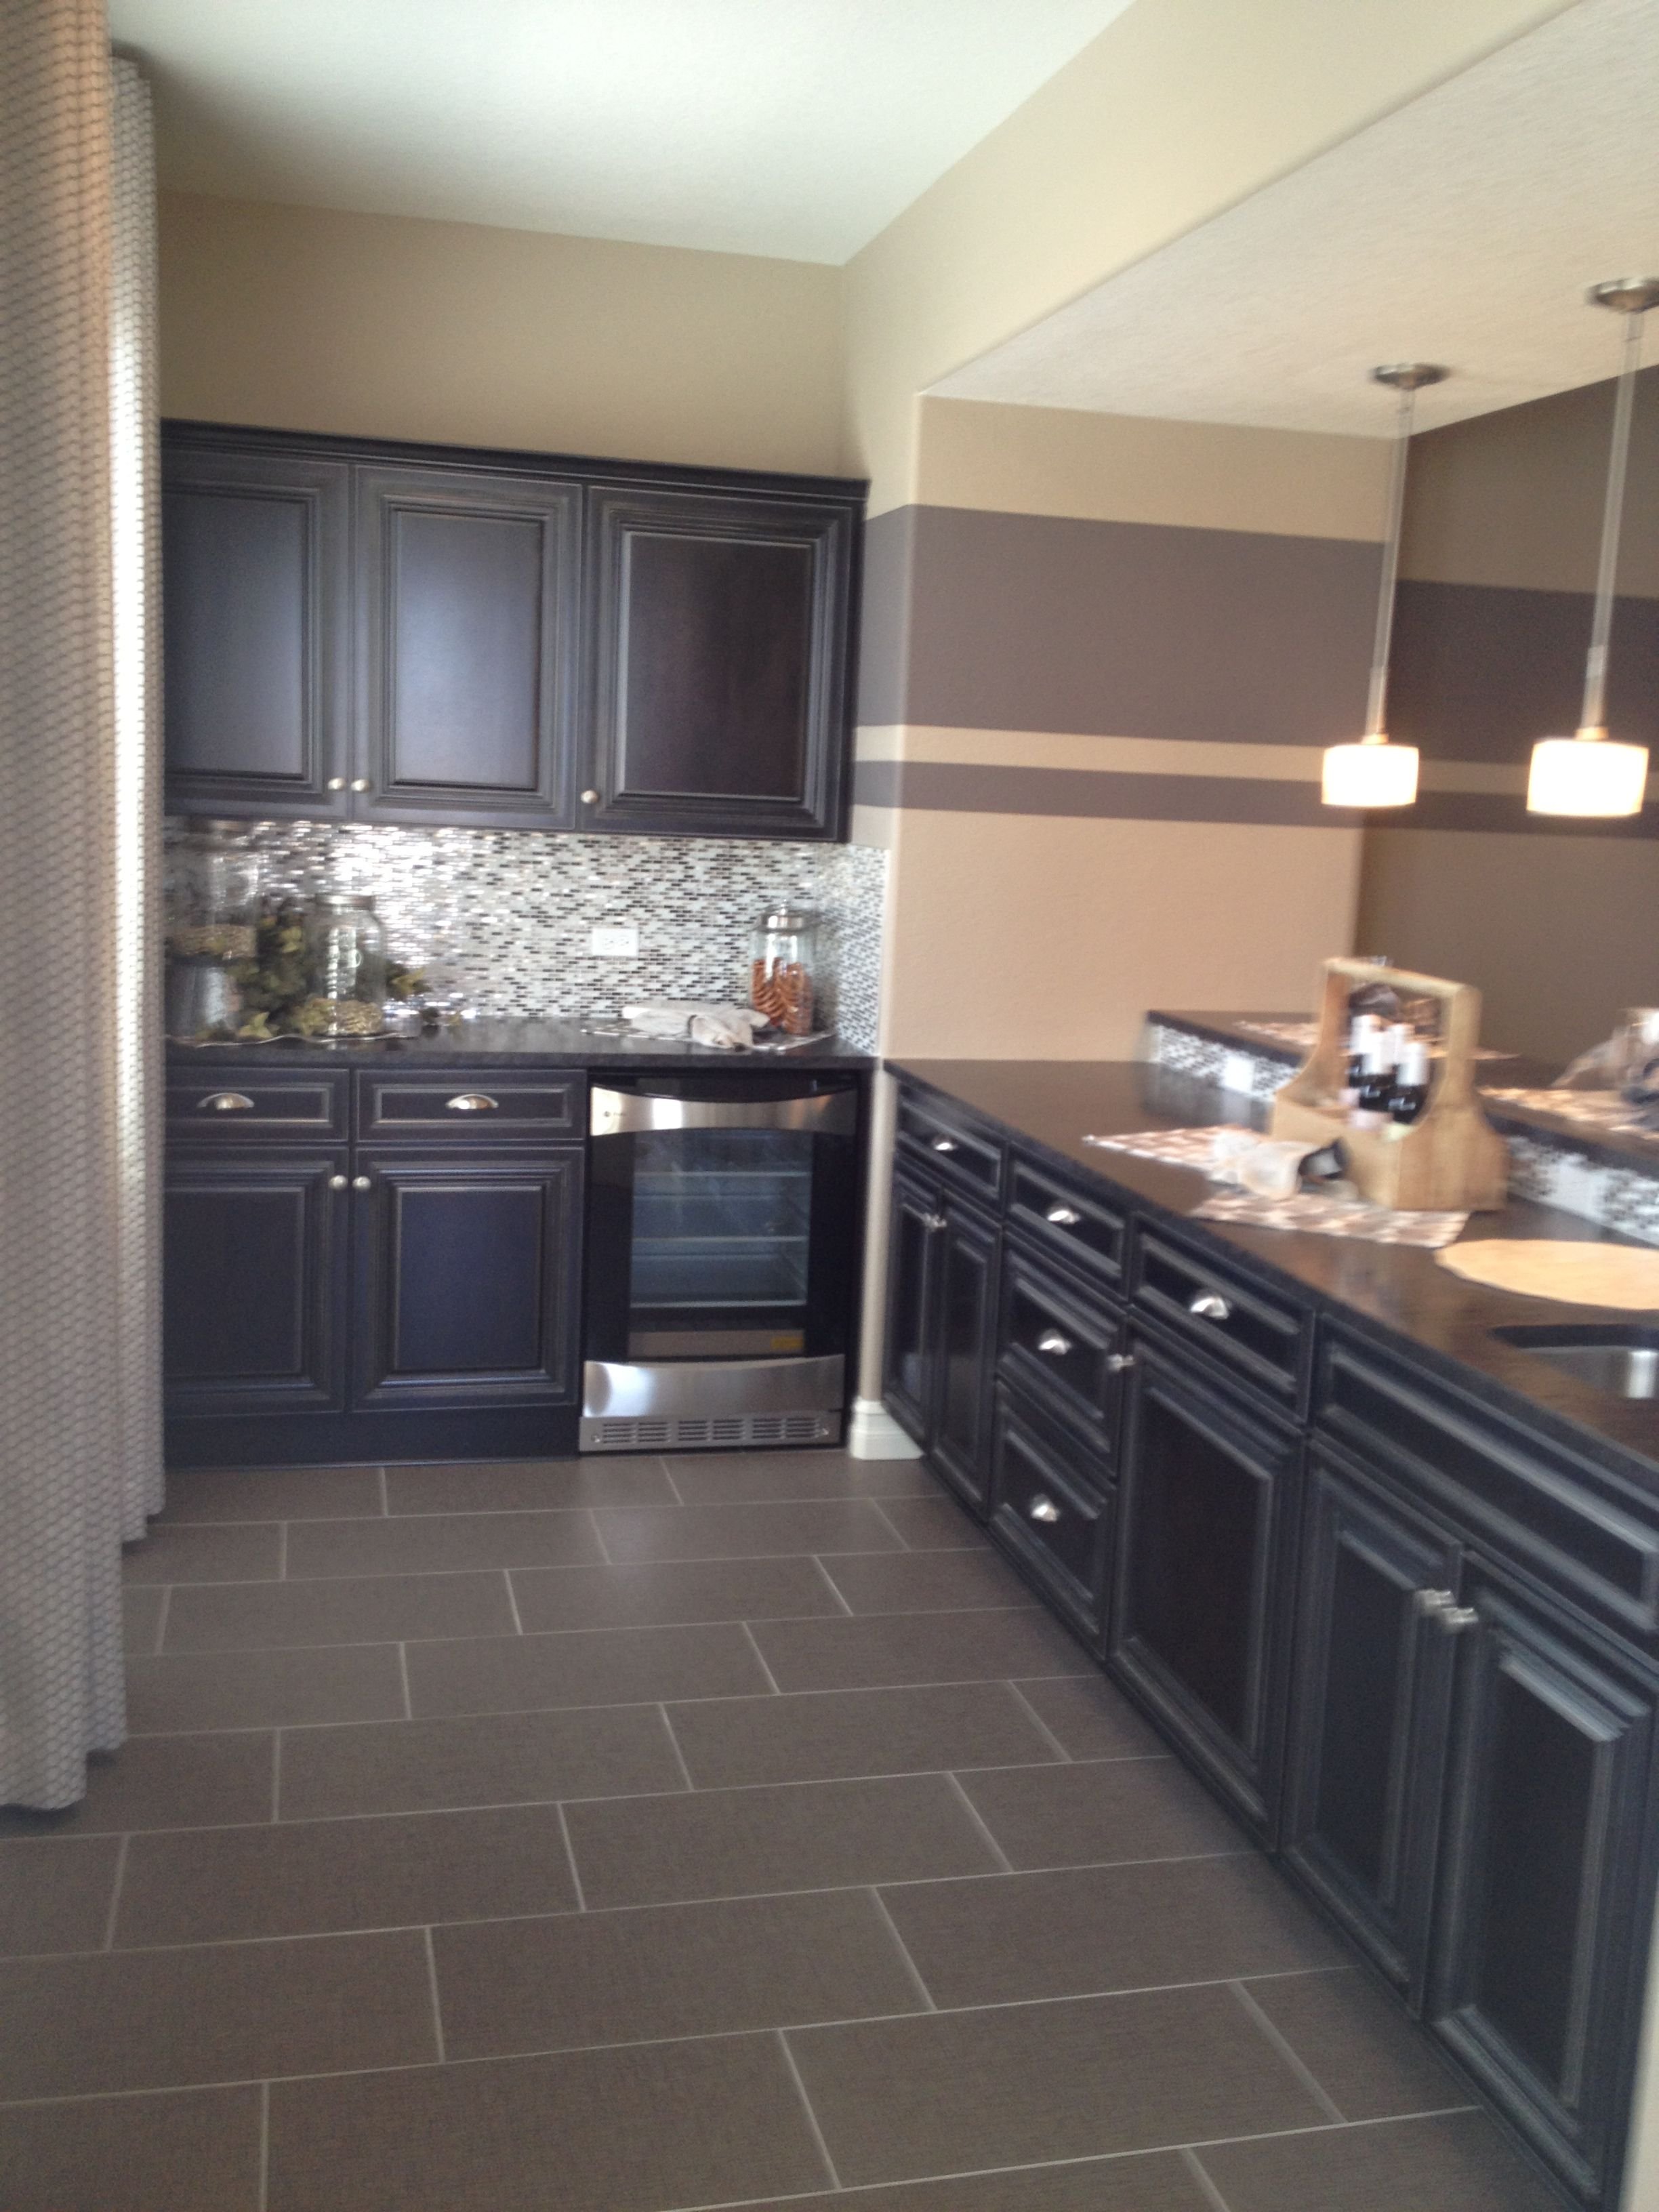 Bat Wet Bar Area With Dark Cabinets And Horizontal Stripes Perfect For Entertaining Remodel Ideas